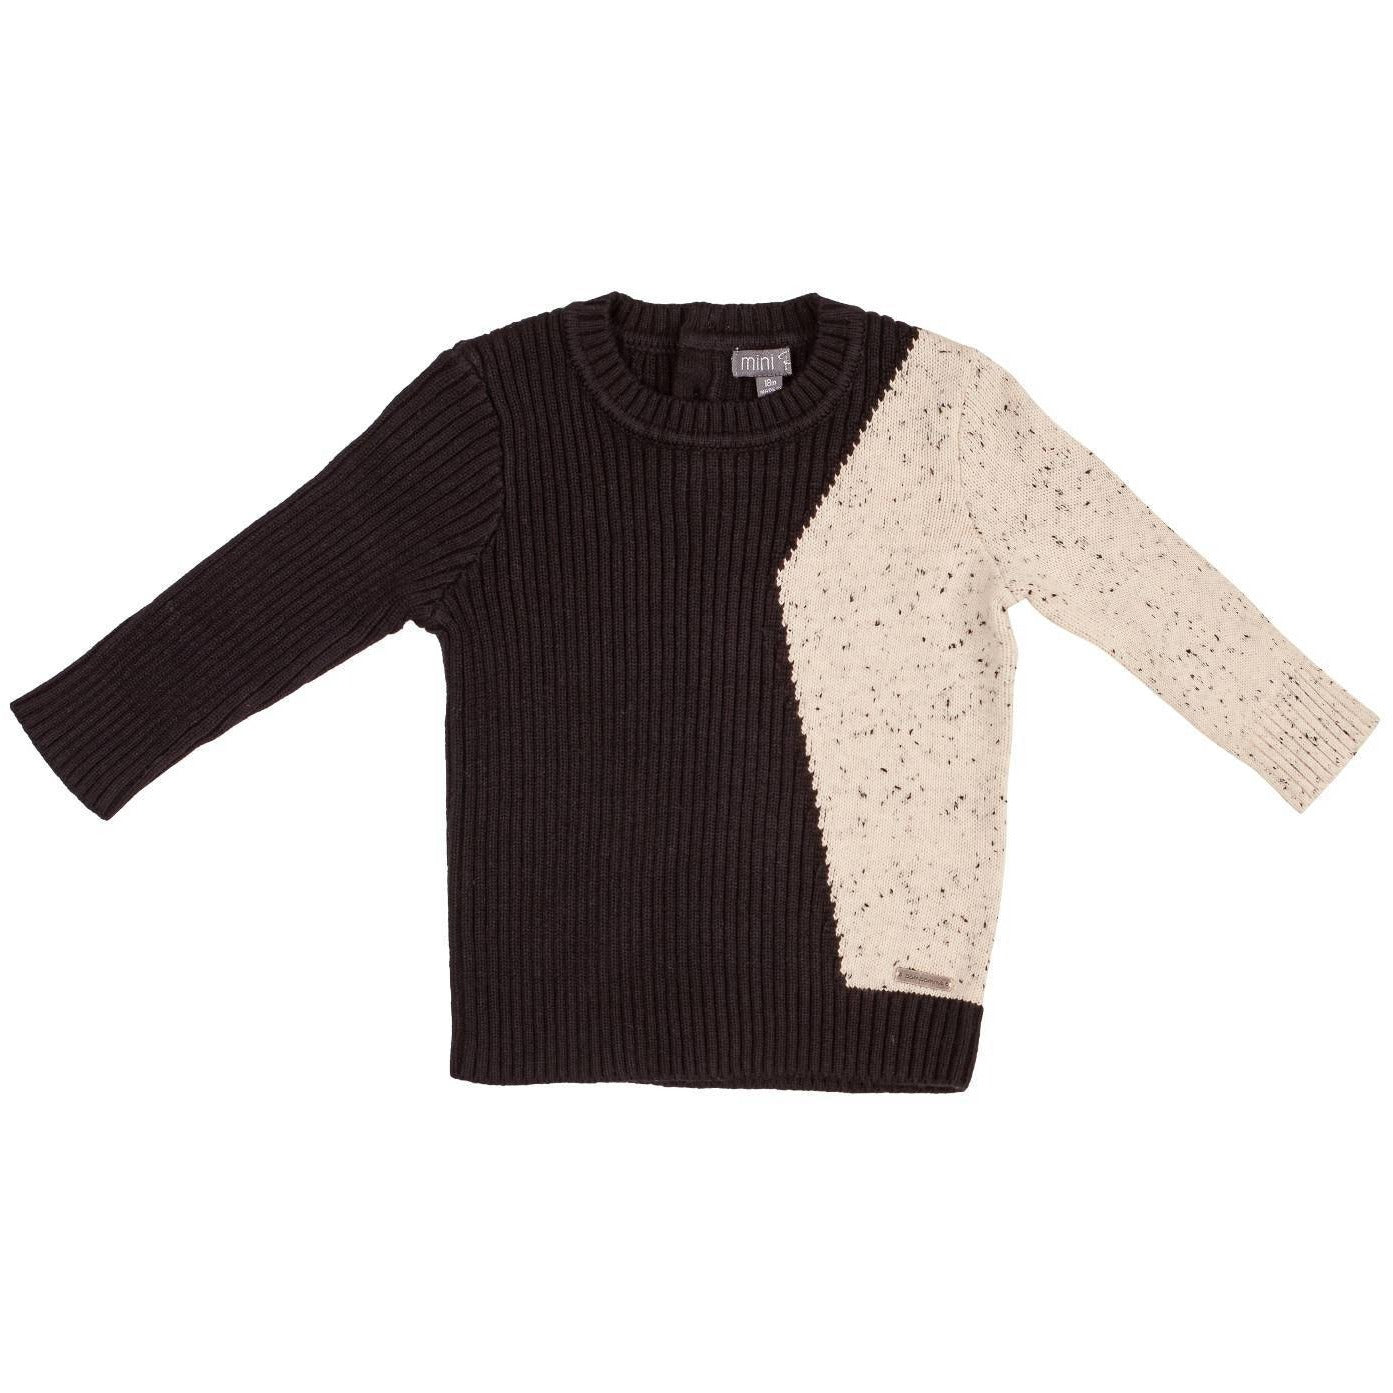 Pompomme Black/Off White Speckled Knit Sweater